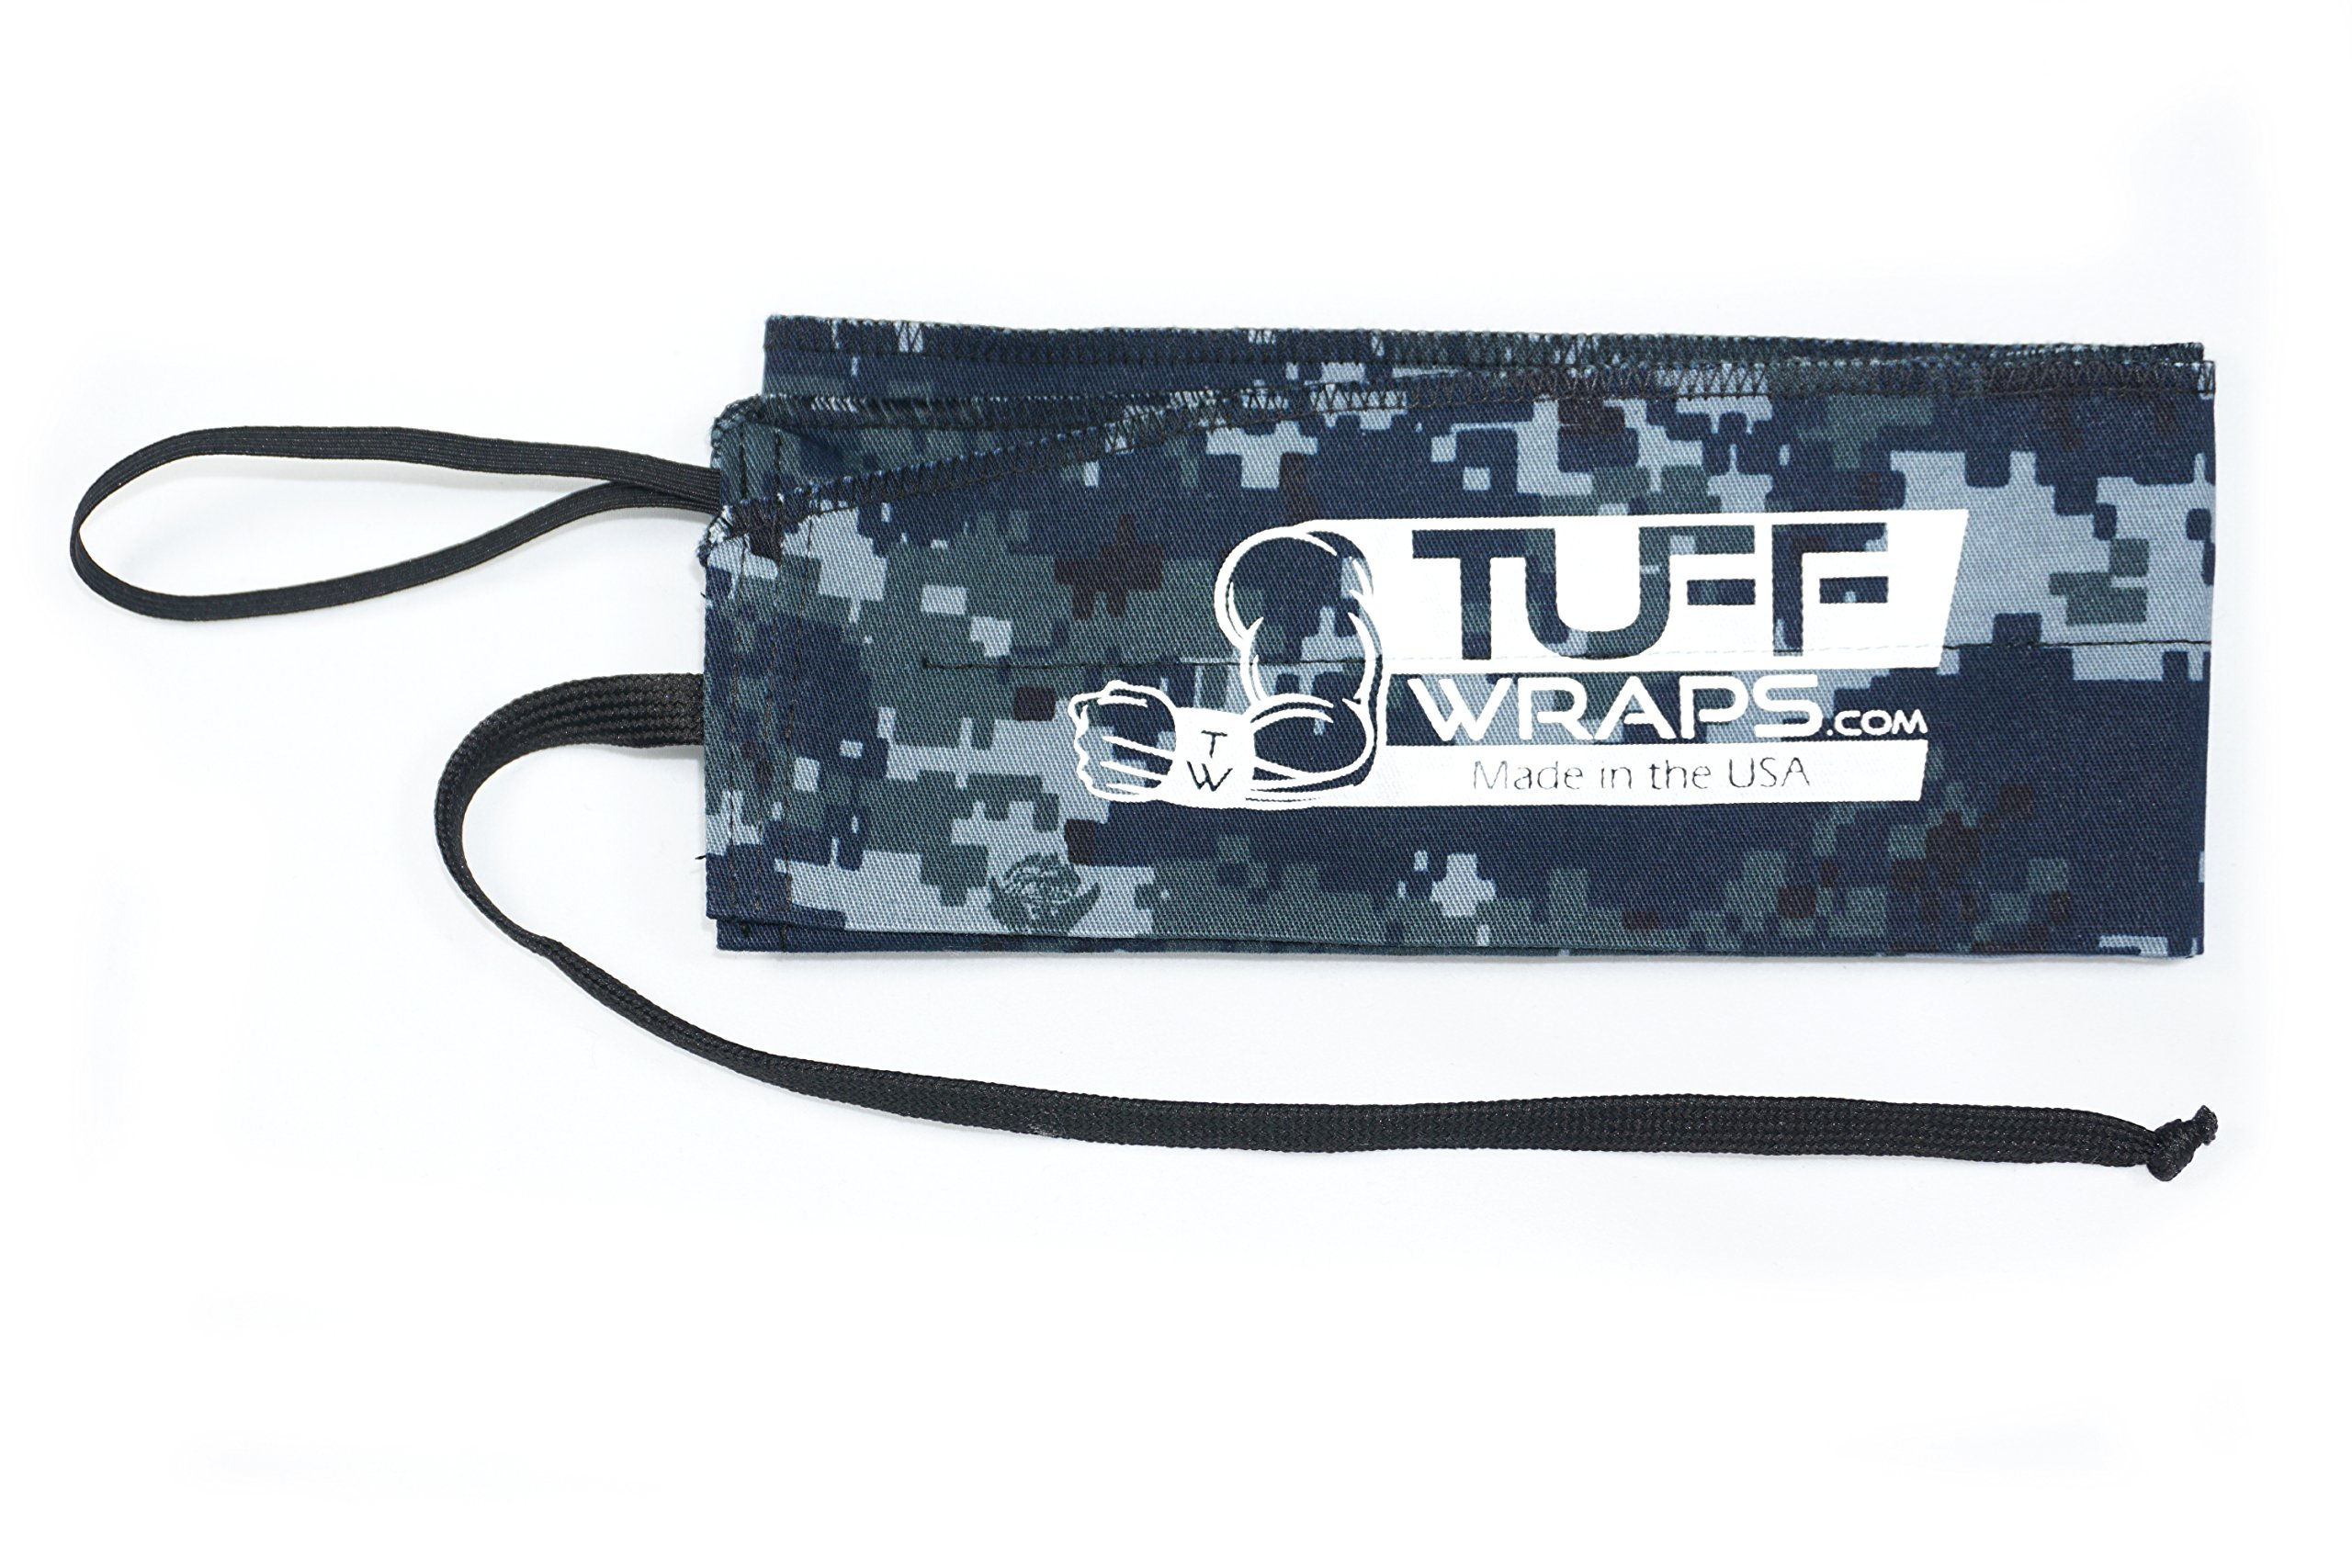 Tuffwraps: Wraps for Crossfit, Olympic Weightlifting, Power Lifting. Innovative Thumb Loop for Easy Application. (Navy Camo)